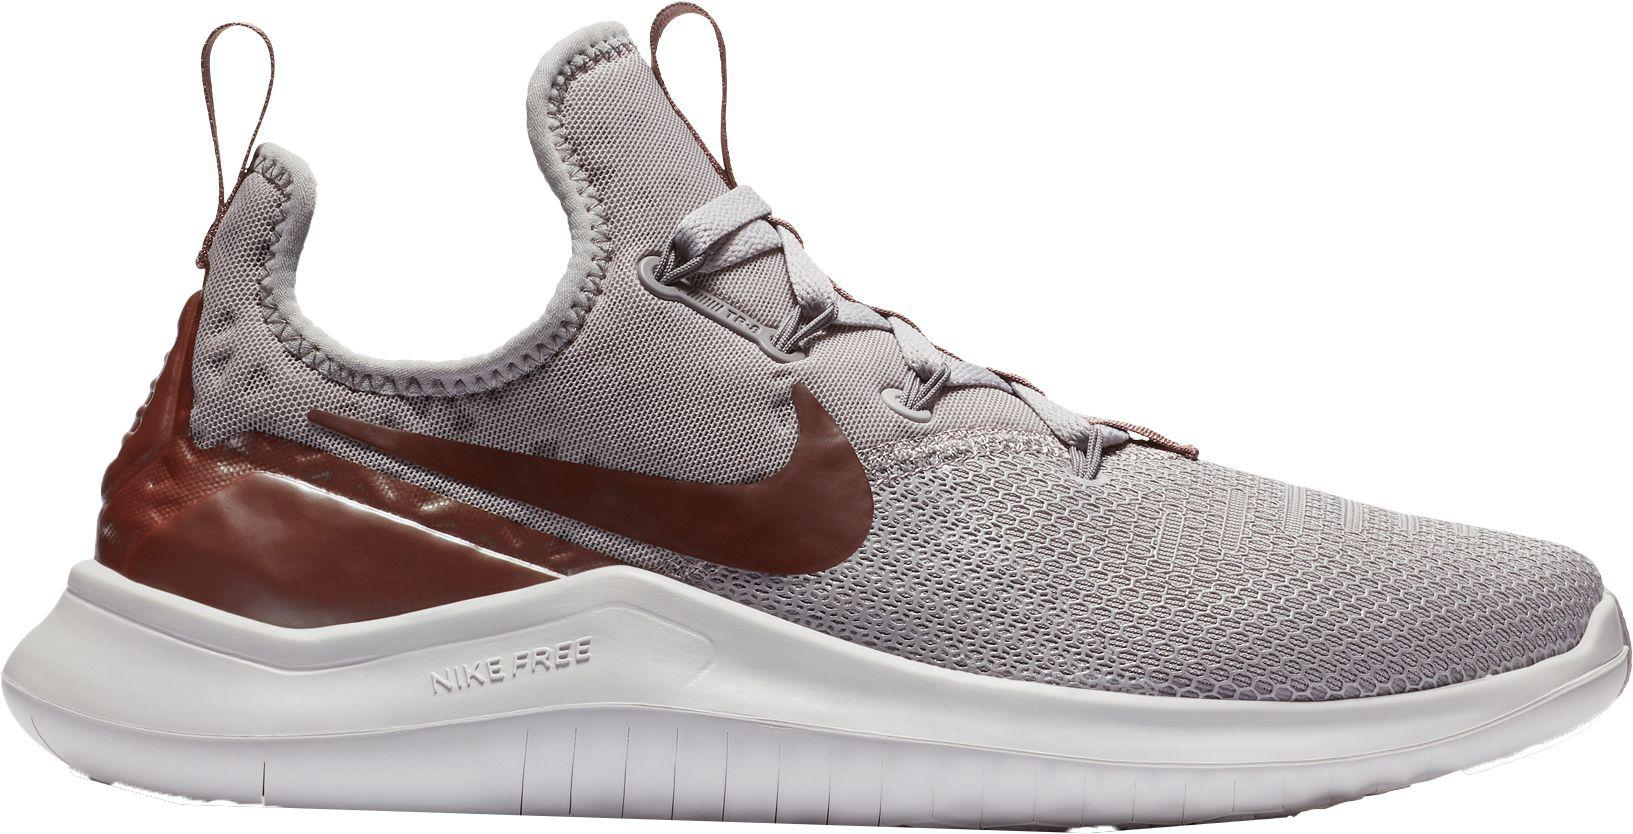 e428338044db Lyst - Nike Free Tr 8 Lm Training Shoes in Gray